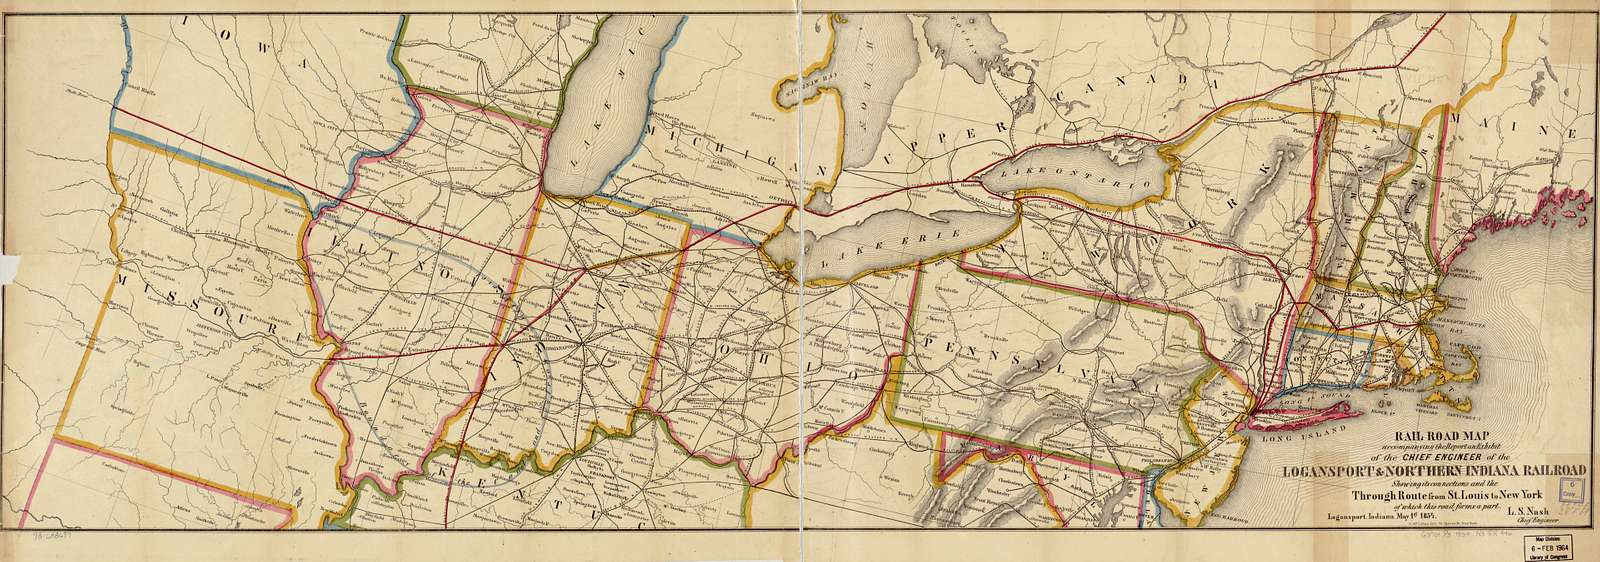 Rail road map accompanying the report an[d] exhibit of the Logansport & Northern Indiana Railroad showing its connections and the through route from St. Louis to New York of which this road forms a part; Logansport, Indiana May 1st 1854; L. S. Nash, Chief Engineer.